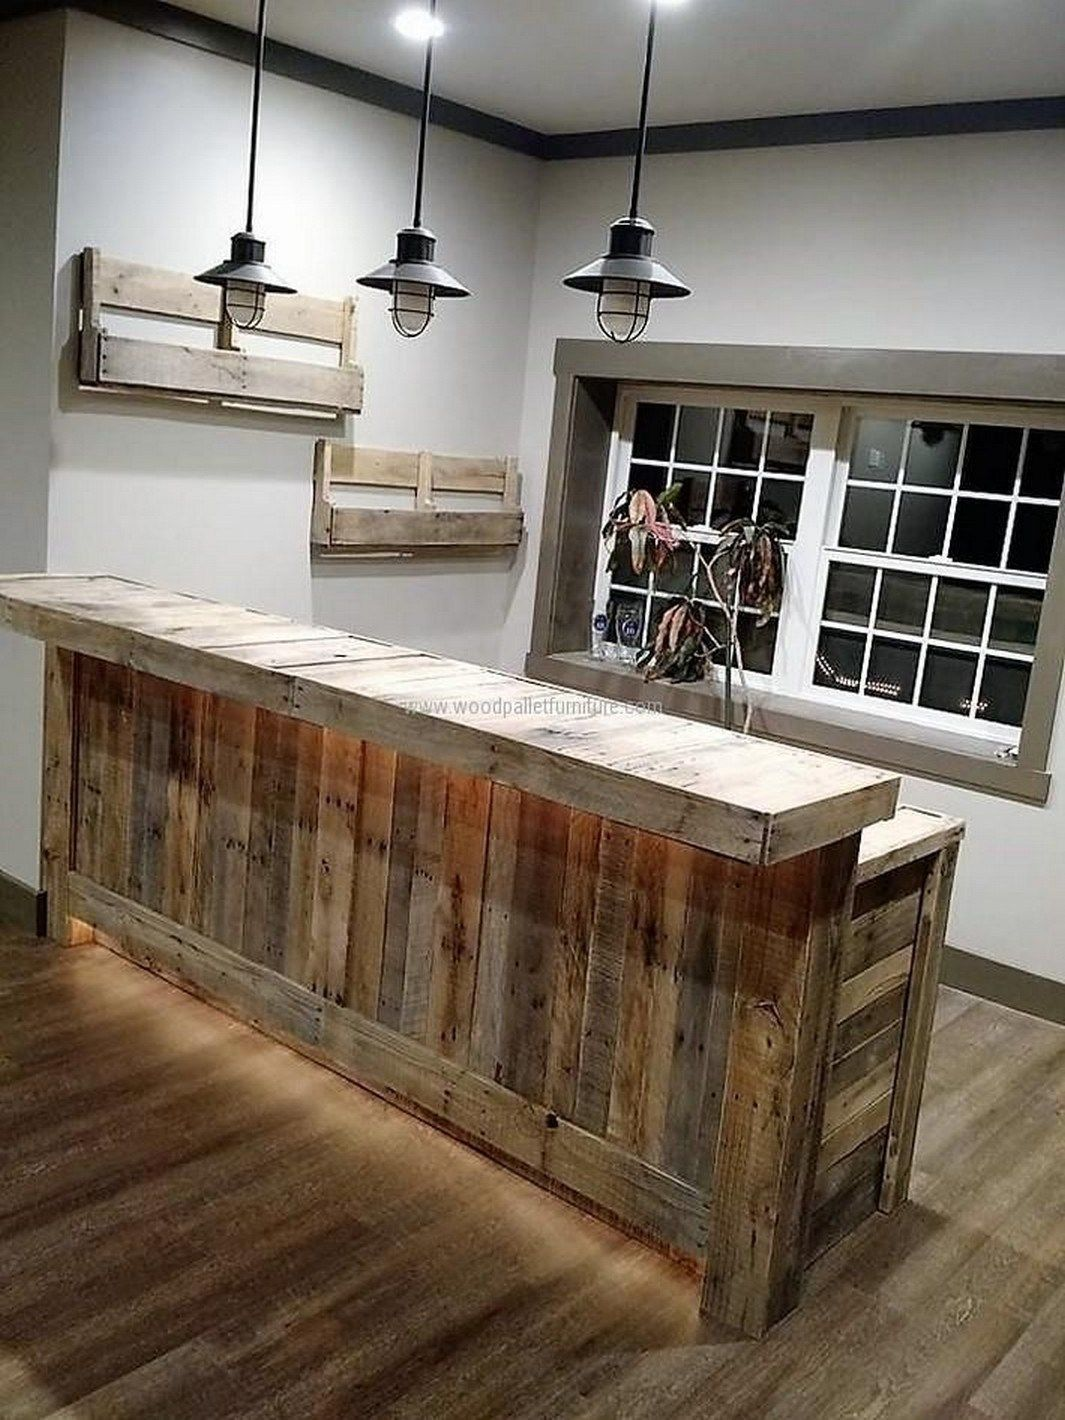 25 Most Creative Wooden Pallets Projects Ideas 32 In 2020